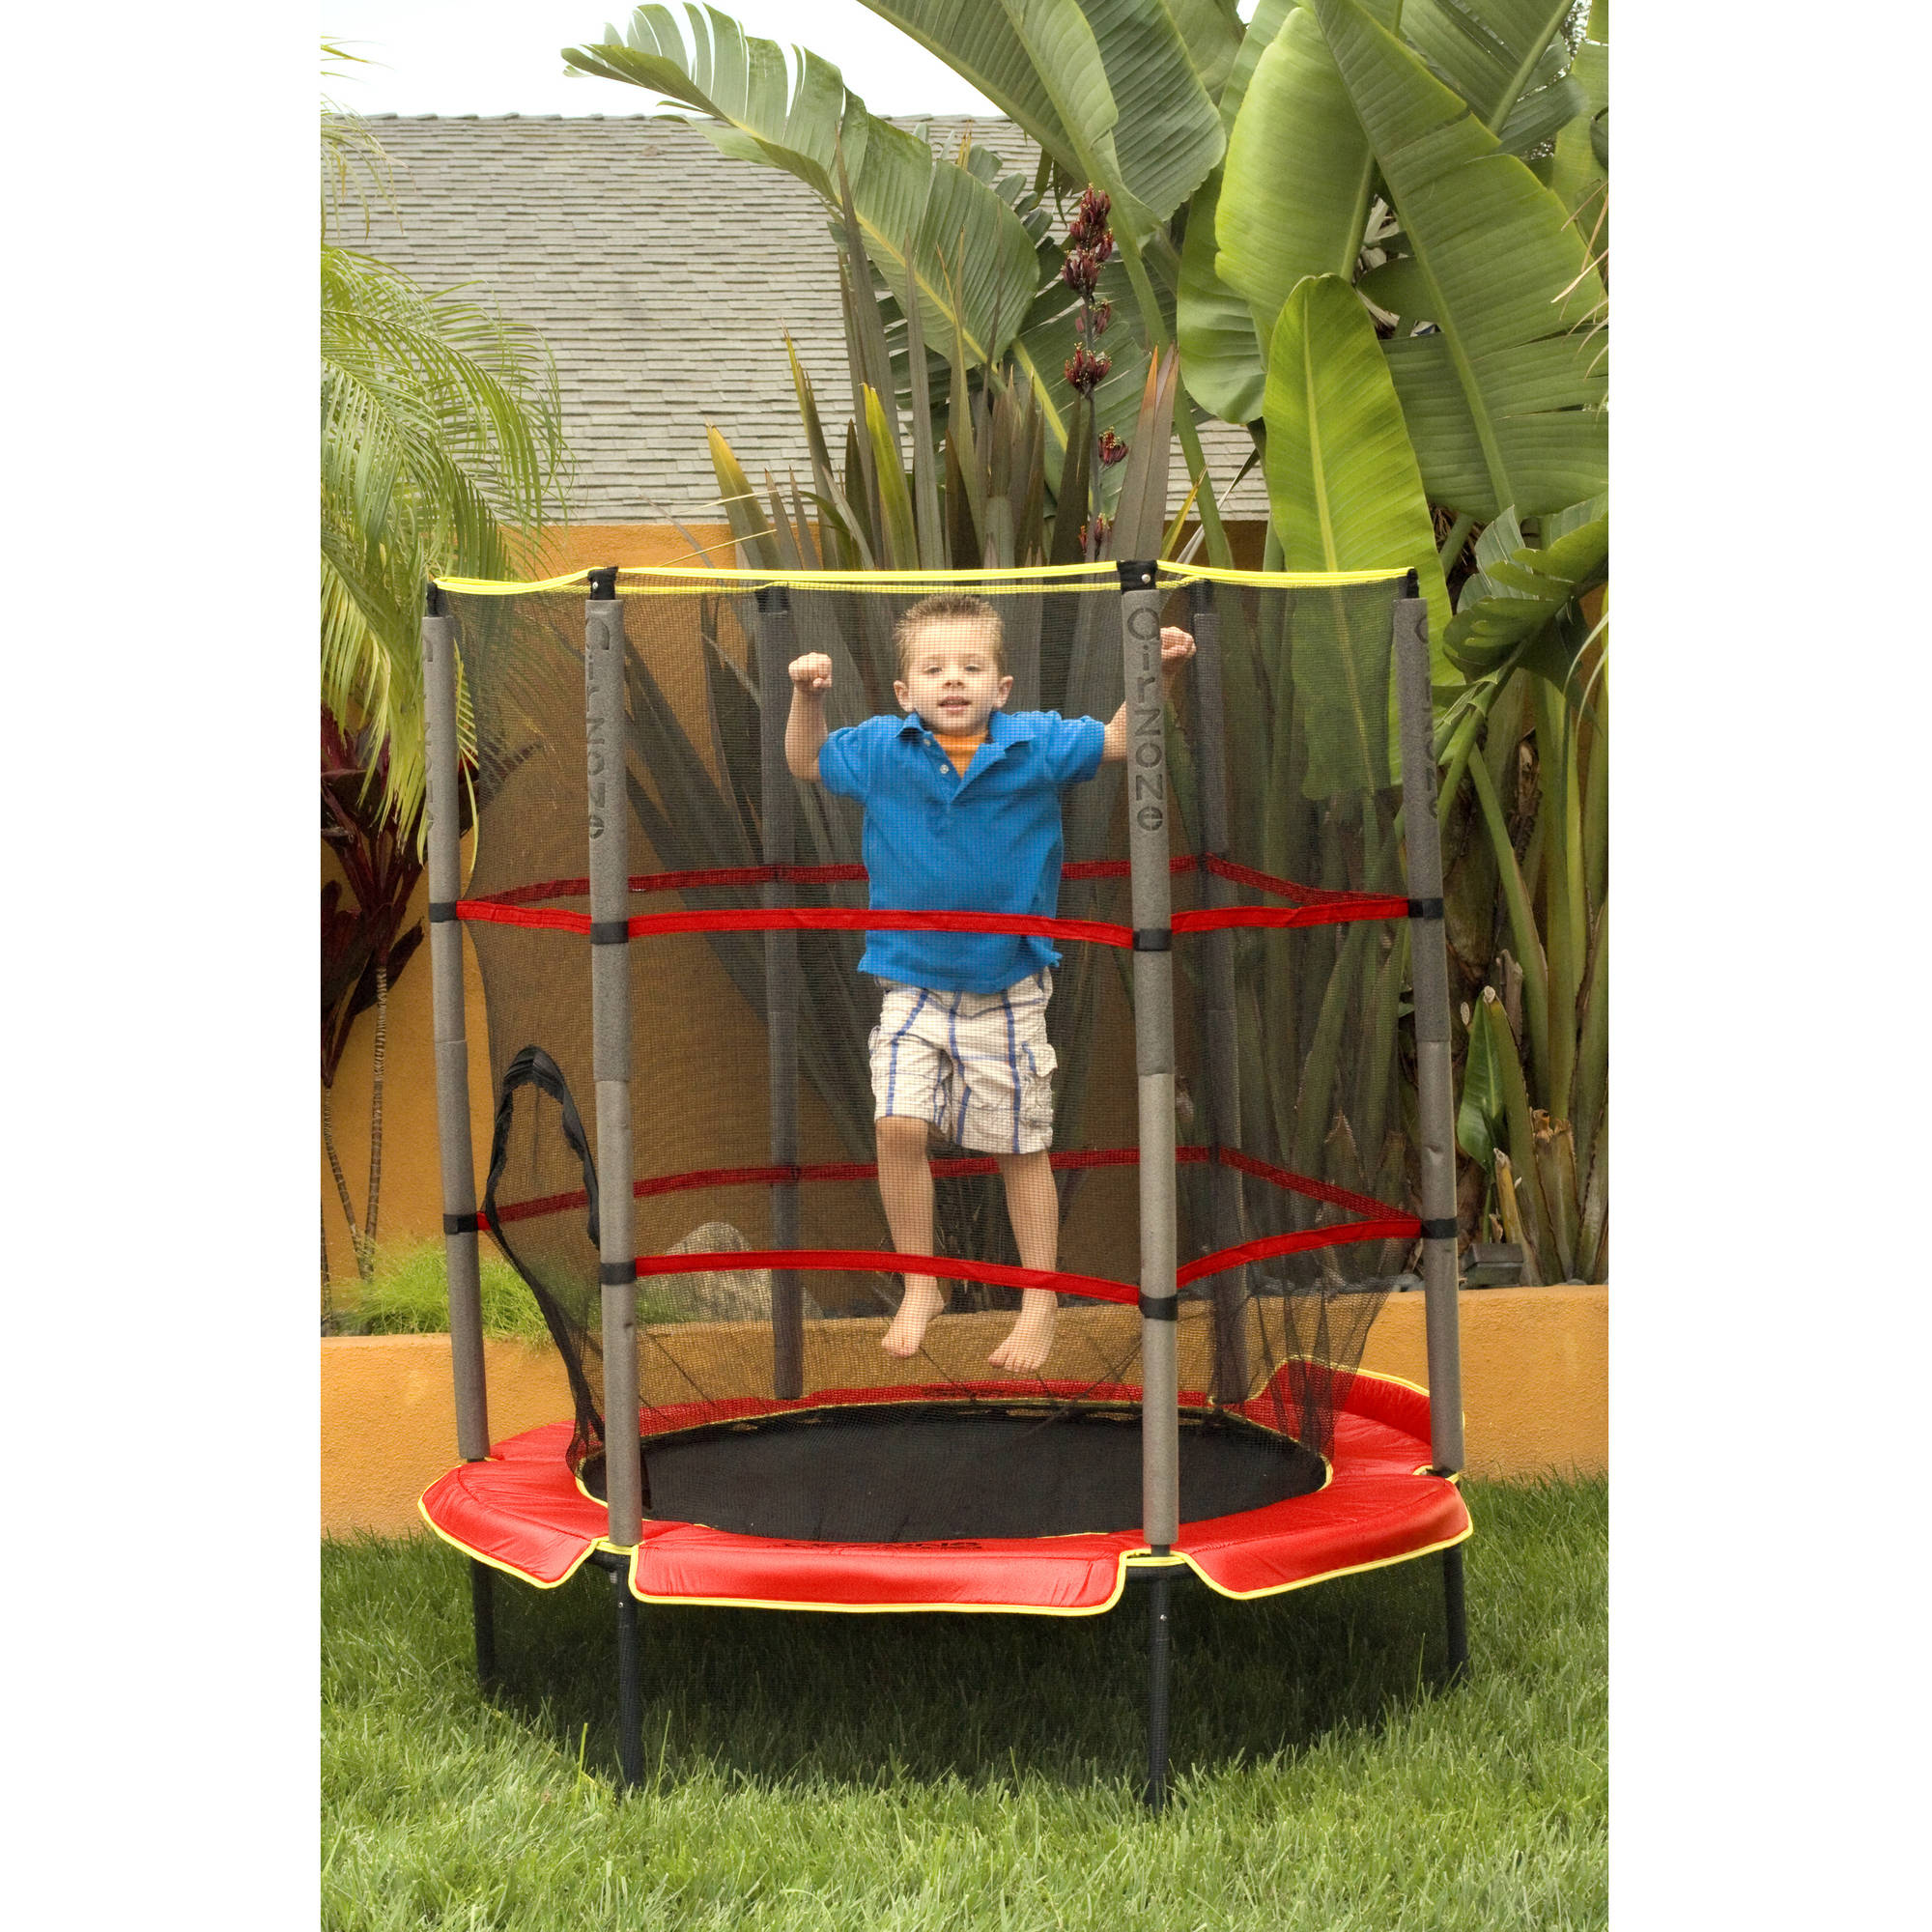 New 14ft Trampoline Combo Bounce Jump Safety Enclosure Net: Trampoline Outdoor Play Kids Bounce Jump With Safety Net